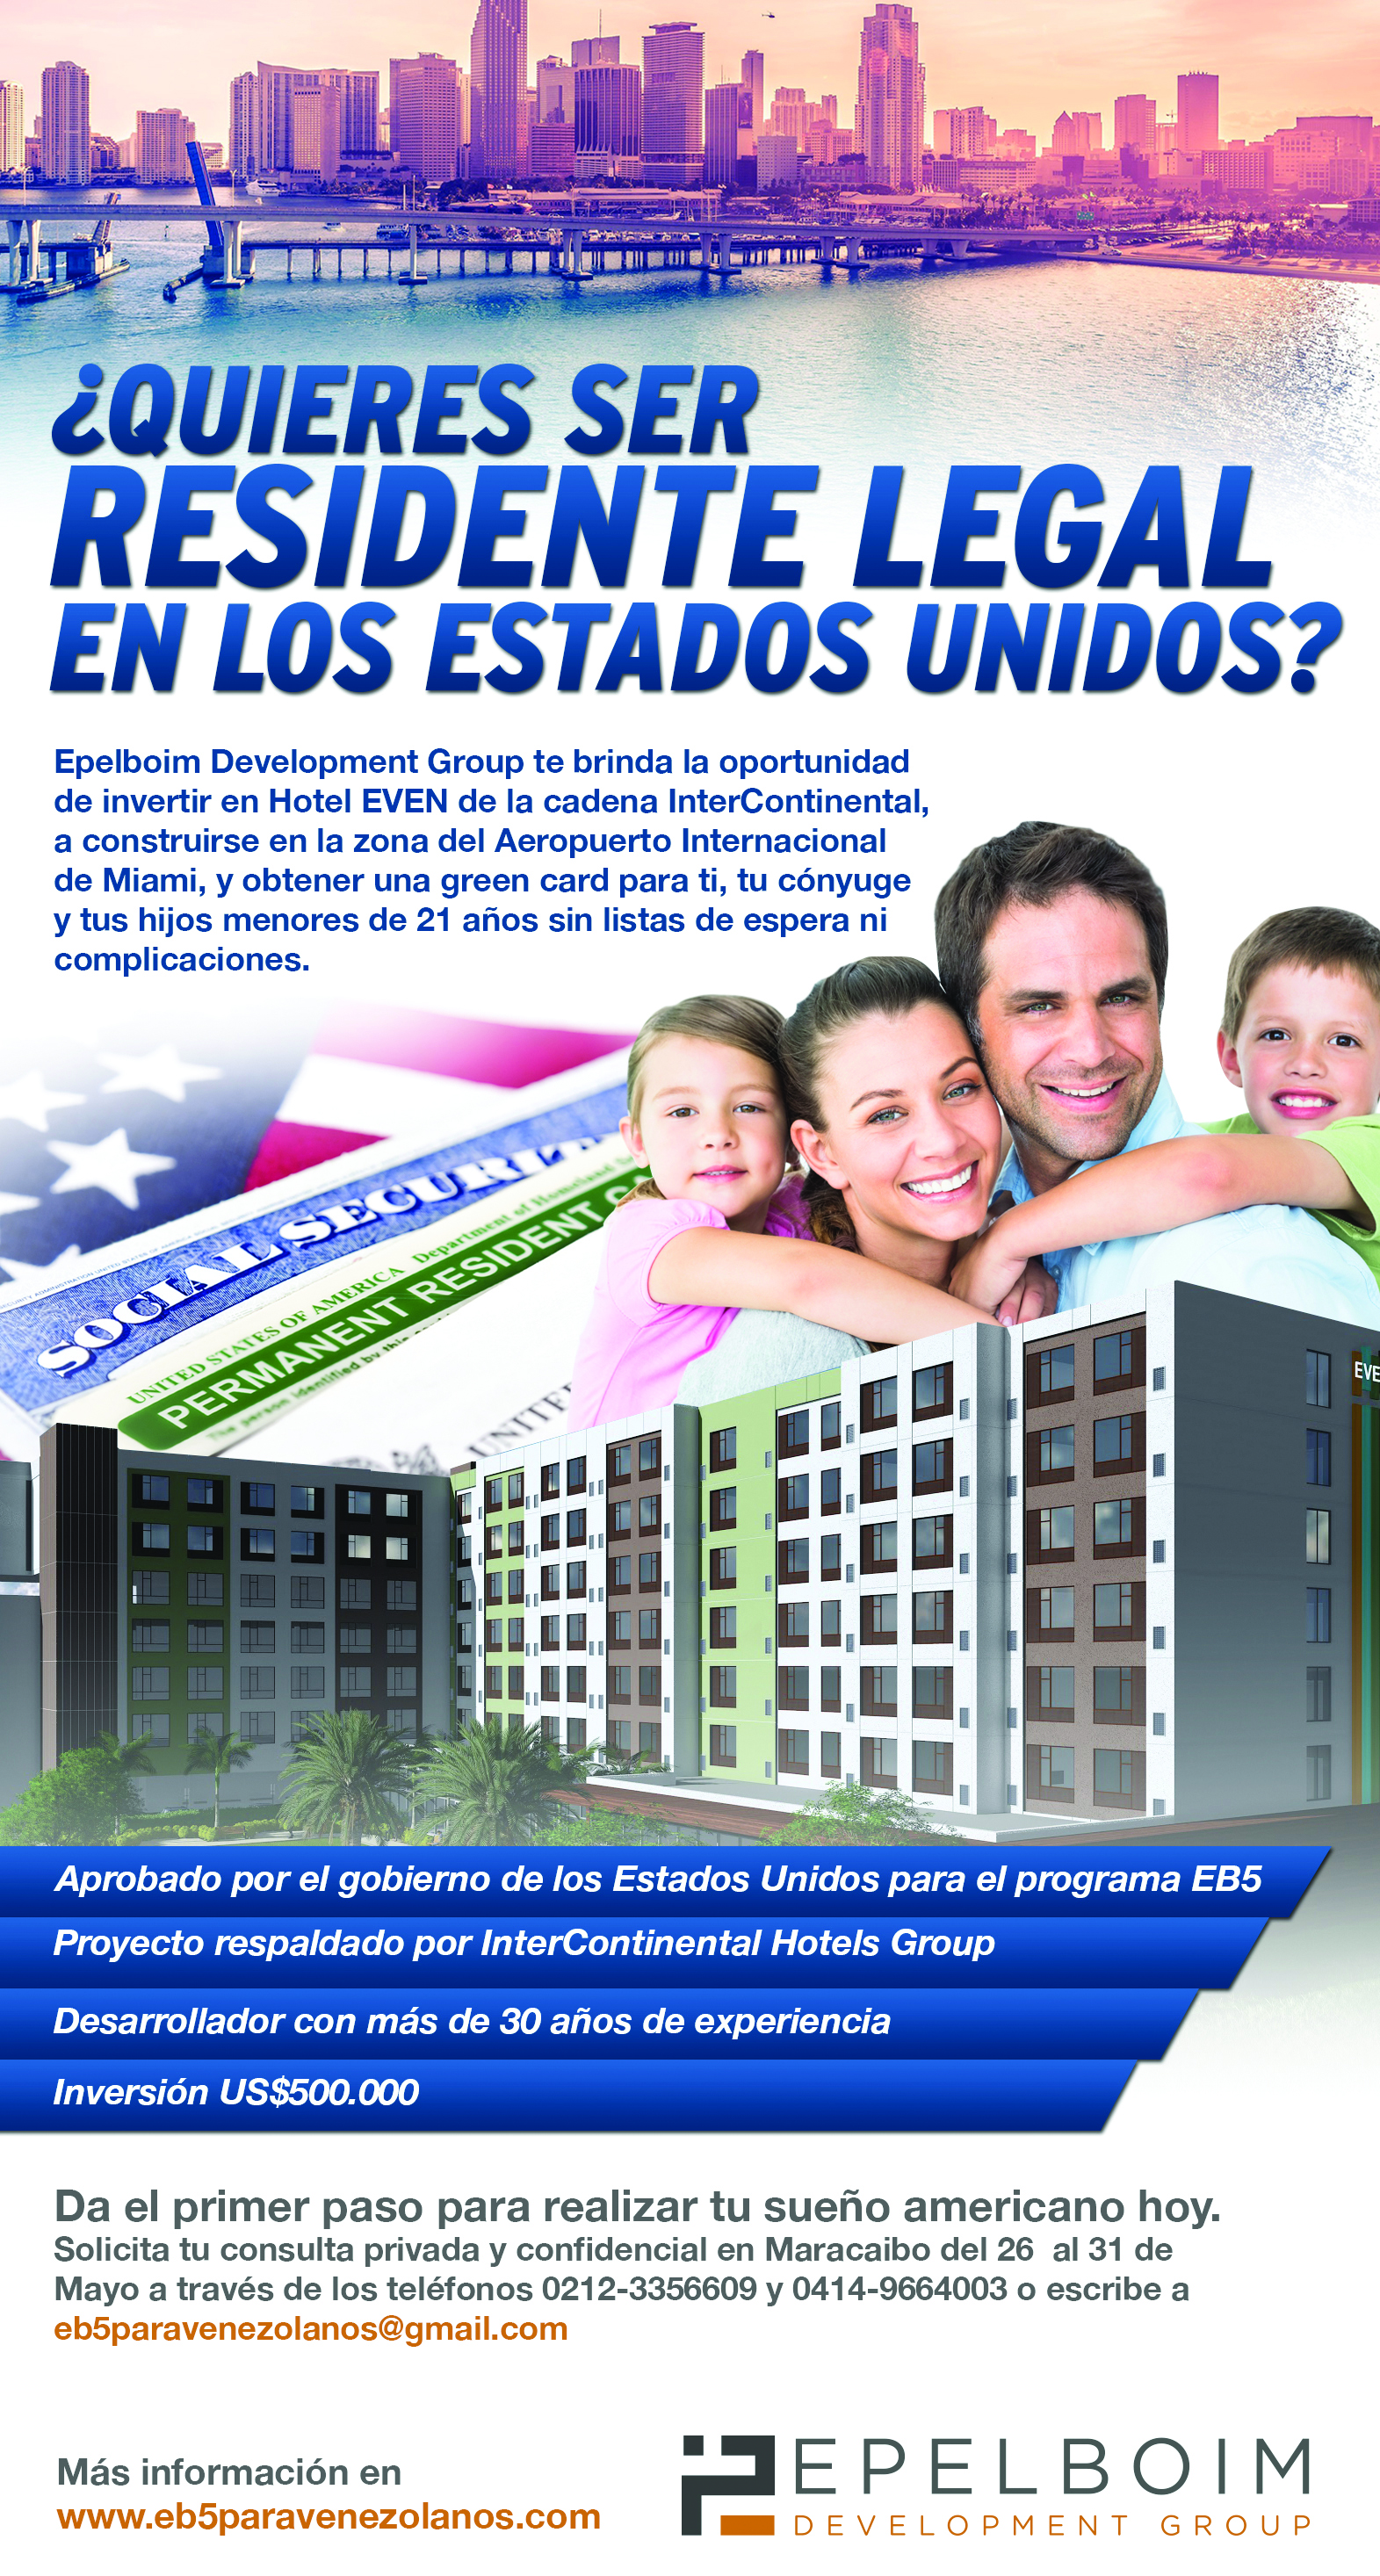 http://dmhamericas.net/DHM/wp-content/uploads/2017/03/Final_DIARIO-LA-VERDAD_NEW_AD_EPEL.jpg